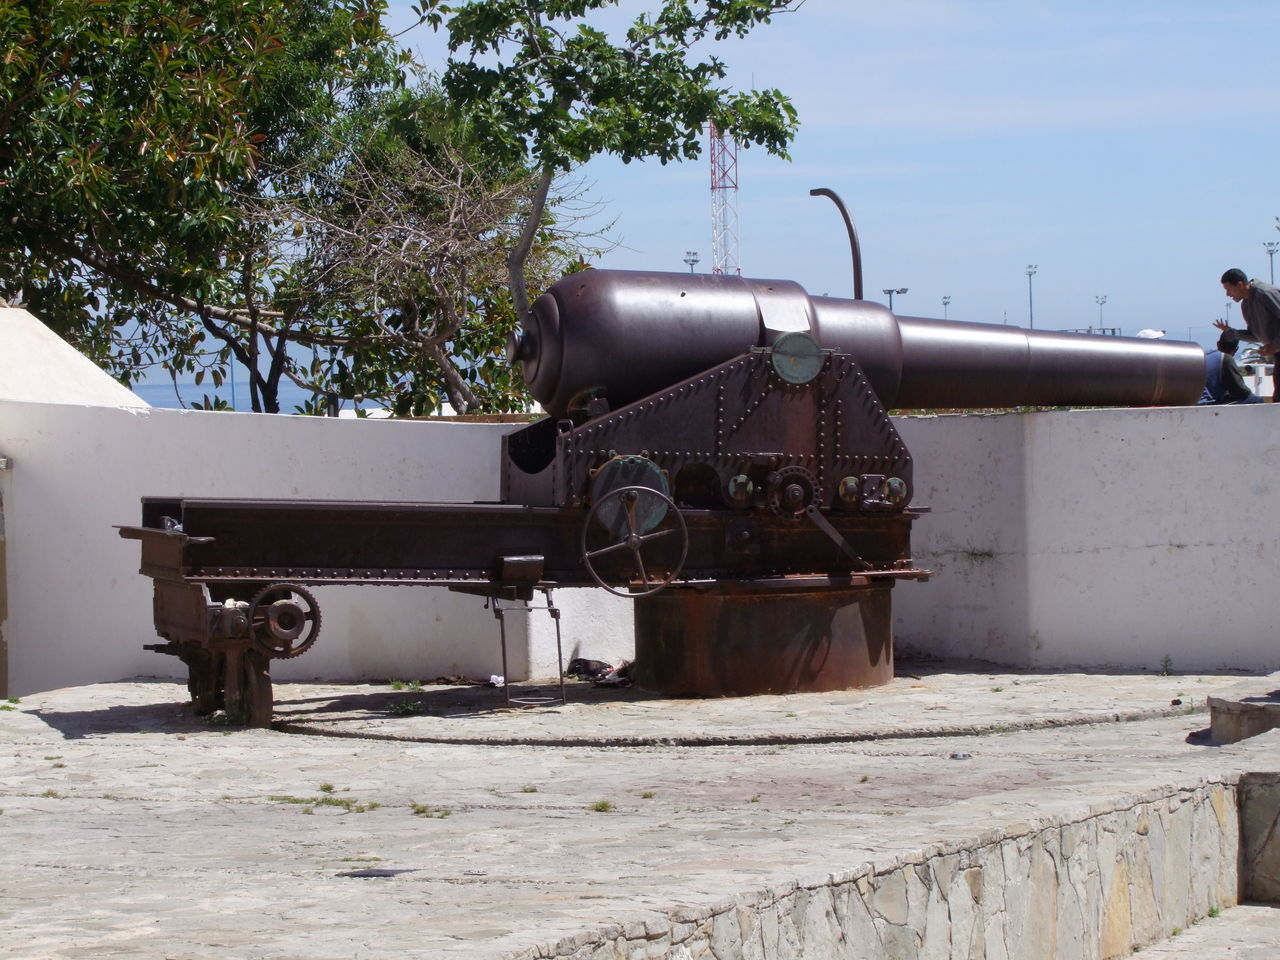 One of Two Guns at the Docks, bought from UK Blue Sky Cannon Docks Gun Gun Emplacement Historical History Metal Military Guns Morocco Naval Gun No People Old-fashioned Sunlight And Shadow Tangier Tangier City Tourist Attraction  Tourist Destination Tree War Weapon